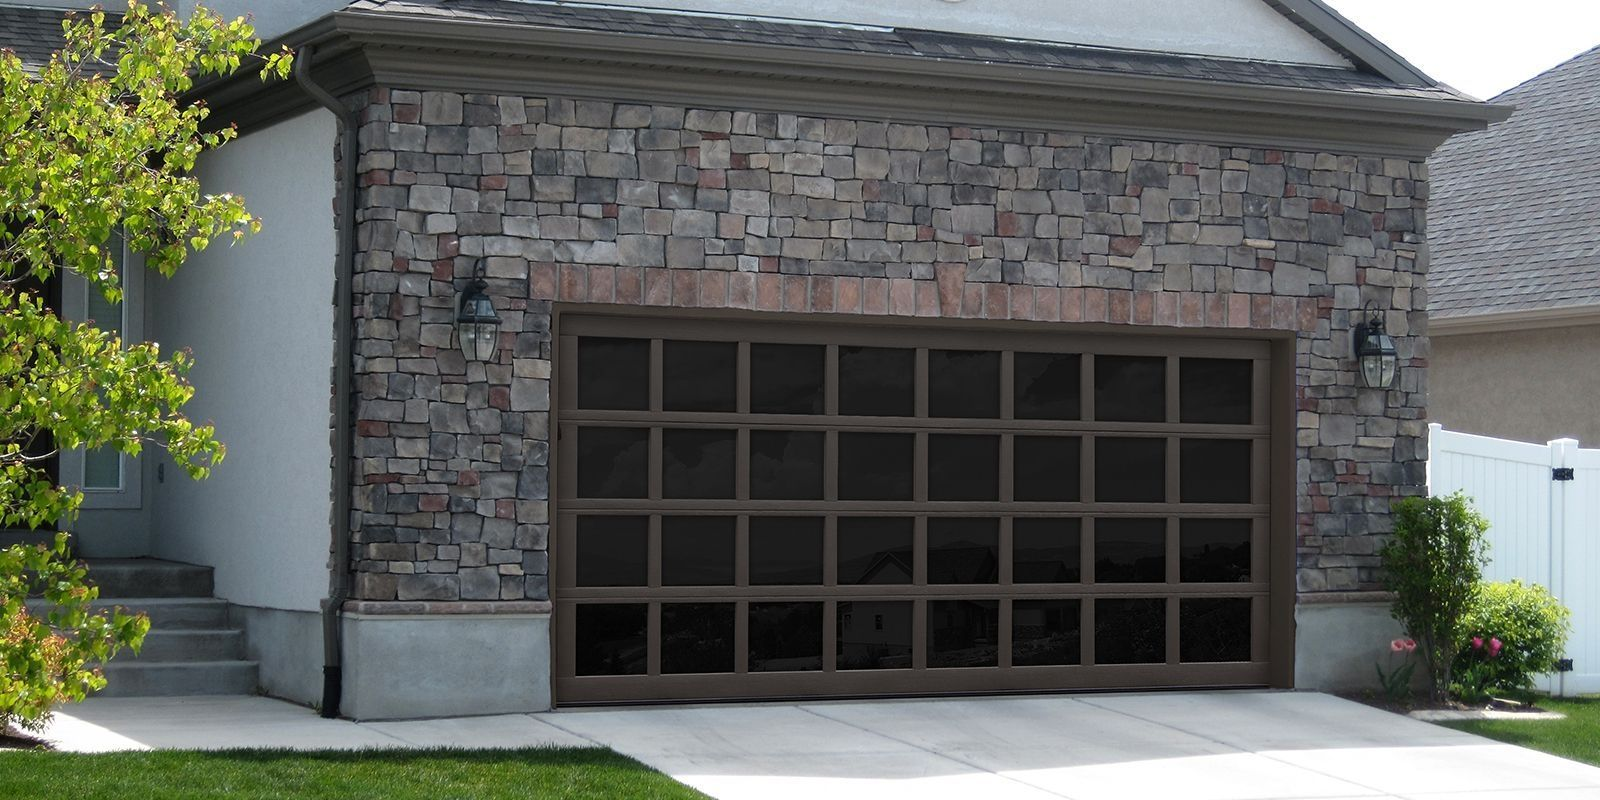 12 Foot Wide Glass Garage Door House Ideas In 2019 Garage Doors Garage Door Types Glass Garage Door